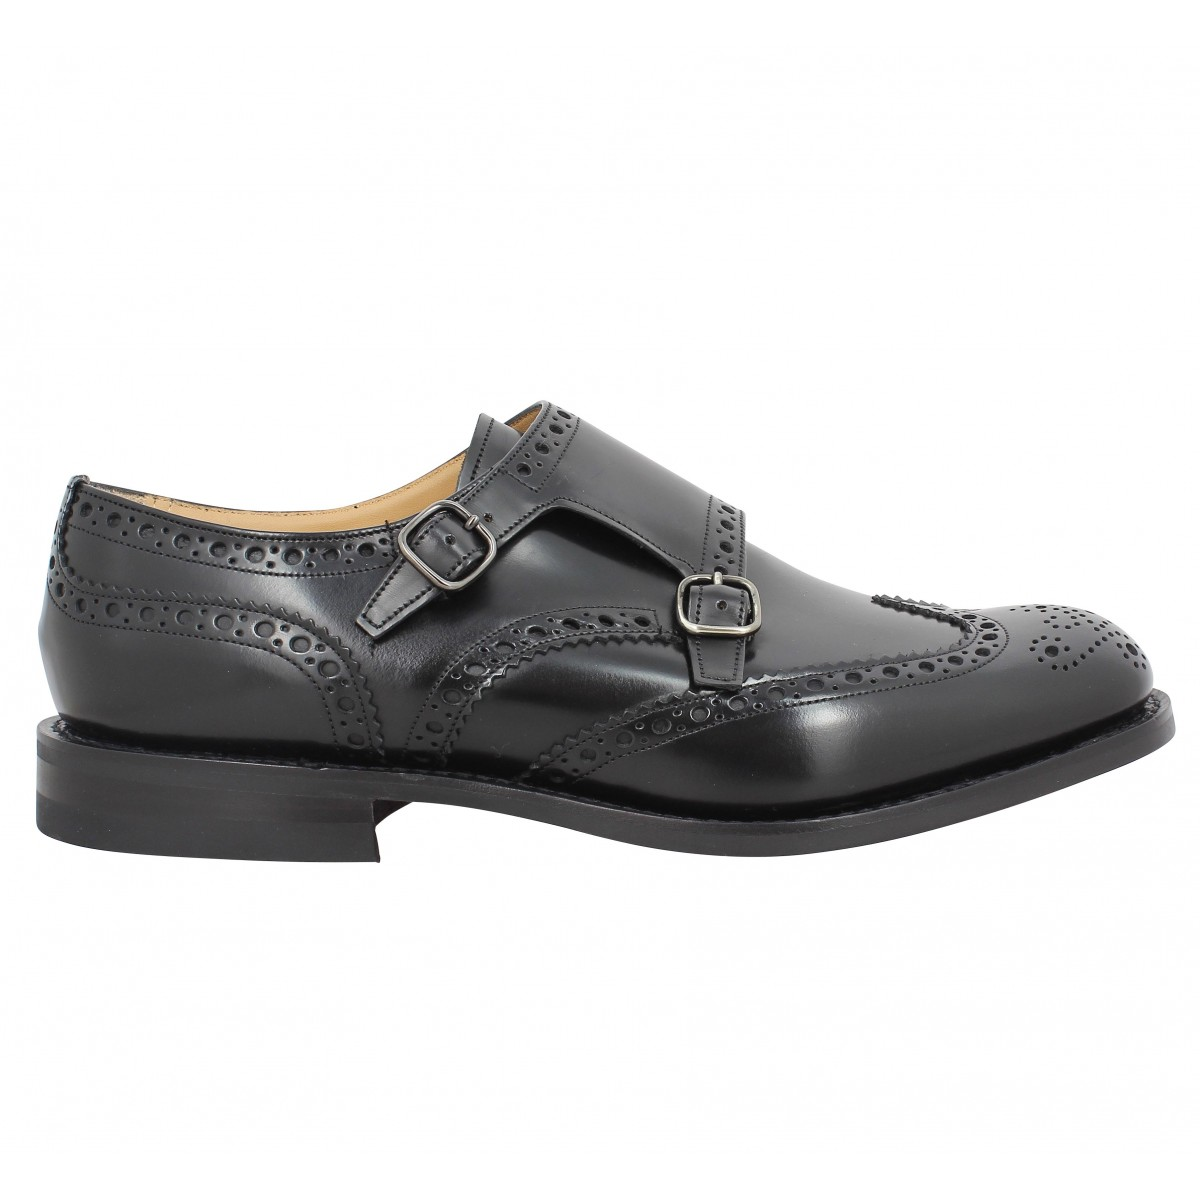 Chaussures à lacets CHURCHS Seaforth velours Homme EbonyChurchs 0zG7WJSP0